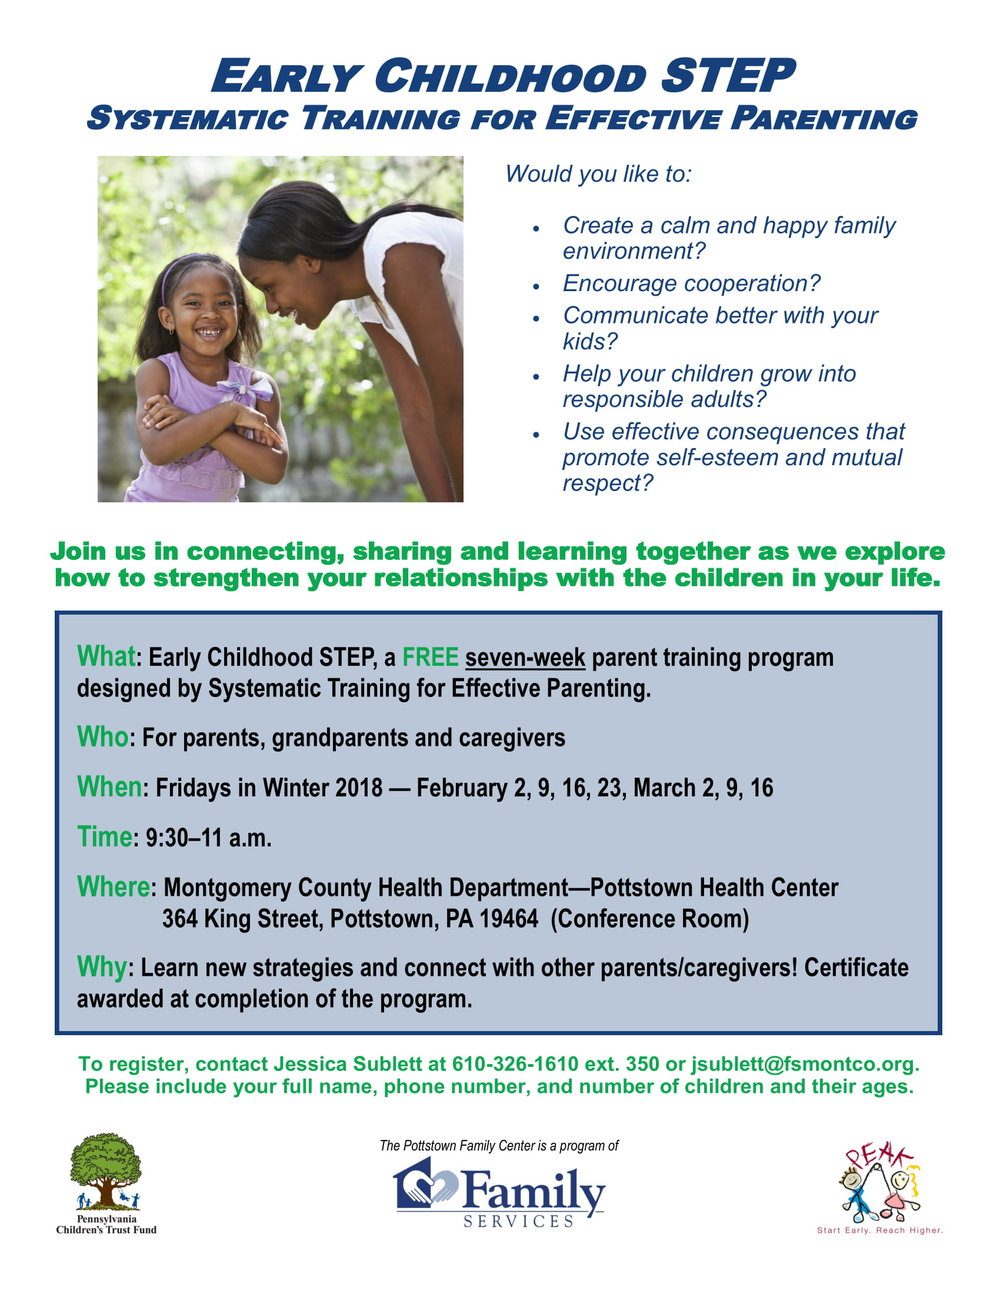 STEP Flyer_Pottstown Health Center 1_2018-1.jpg